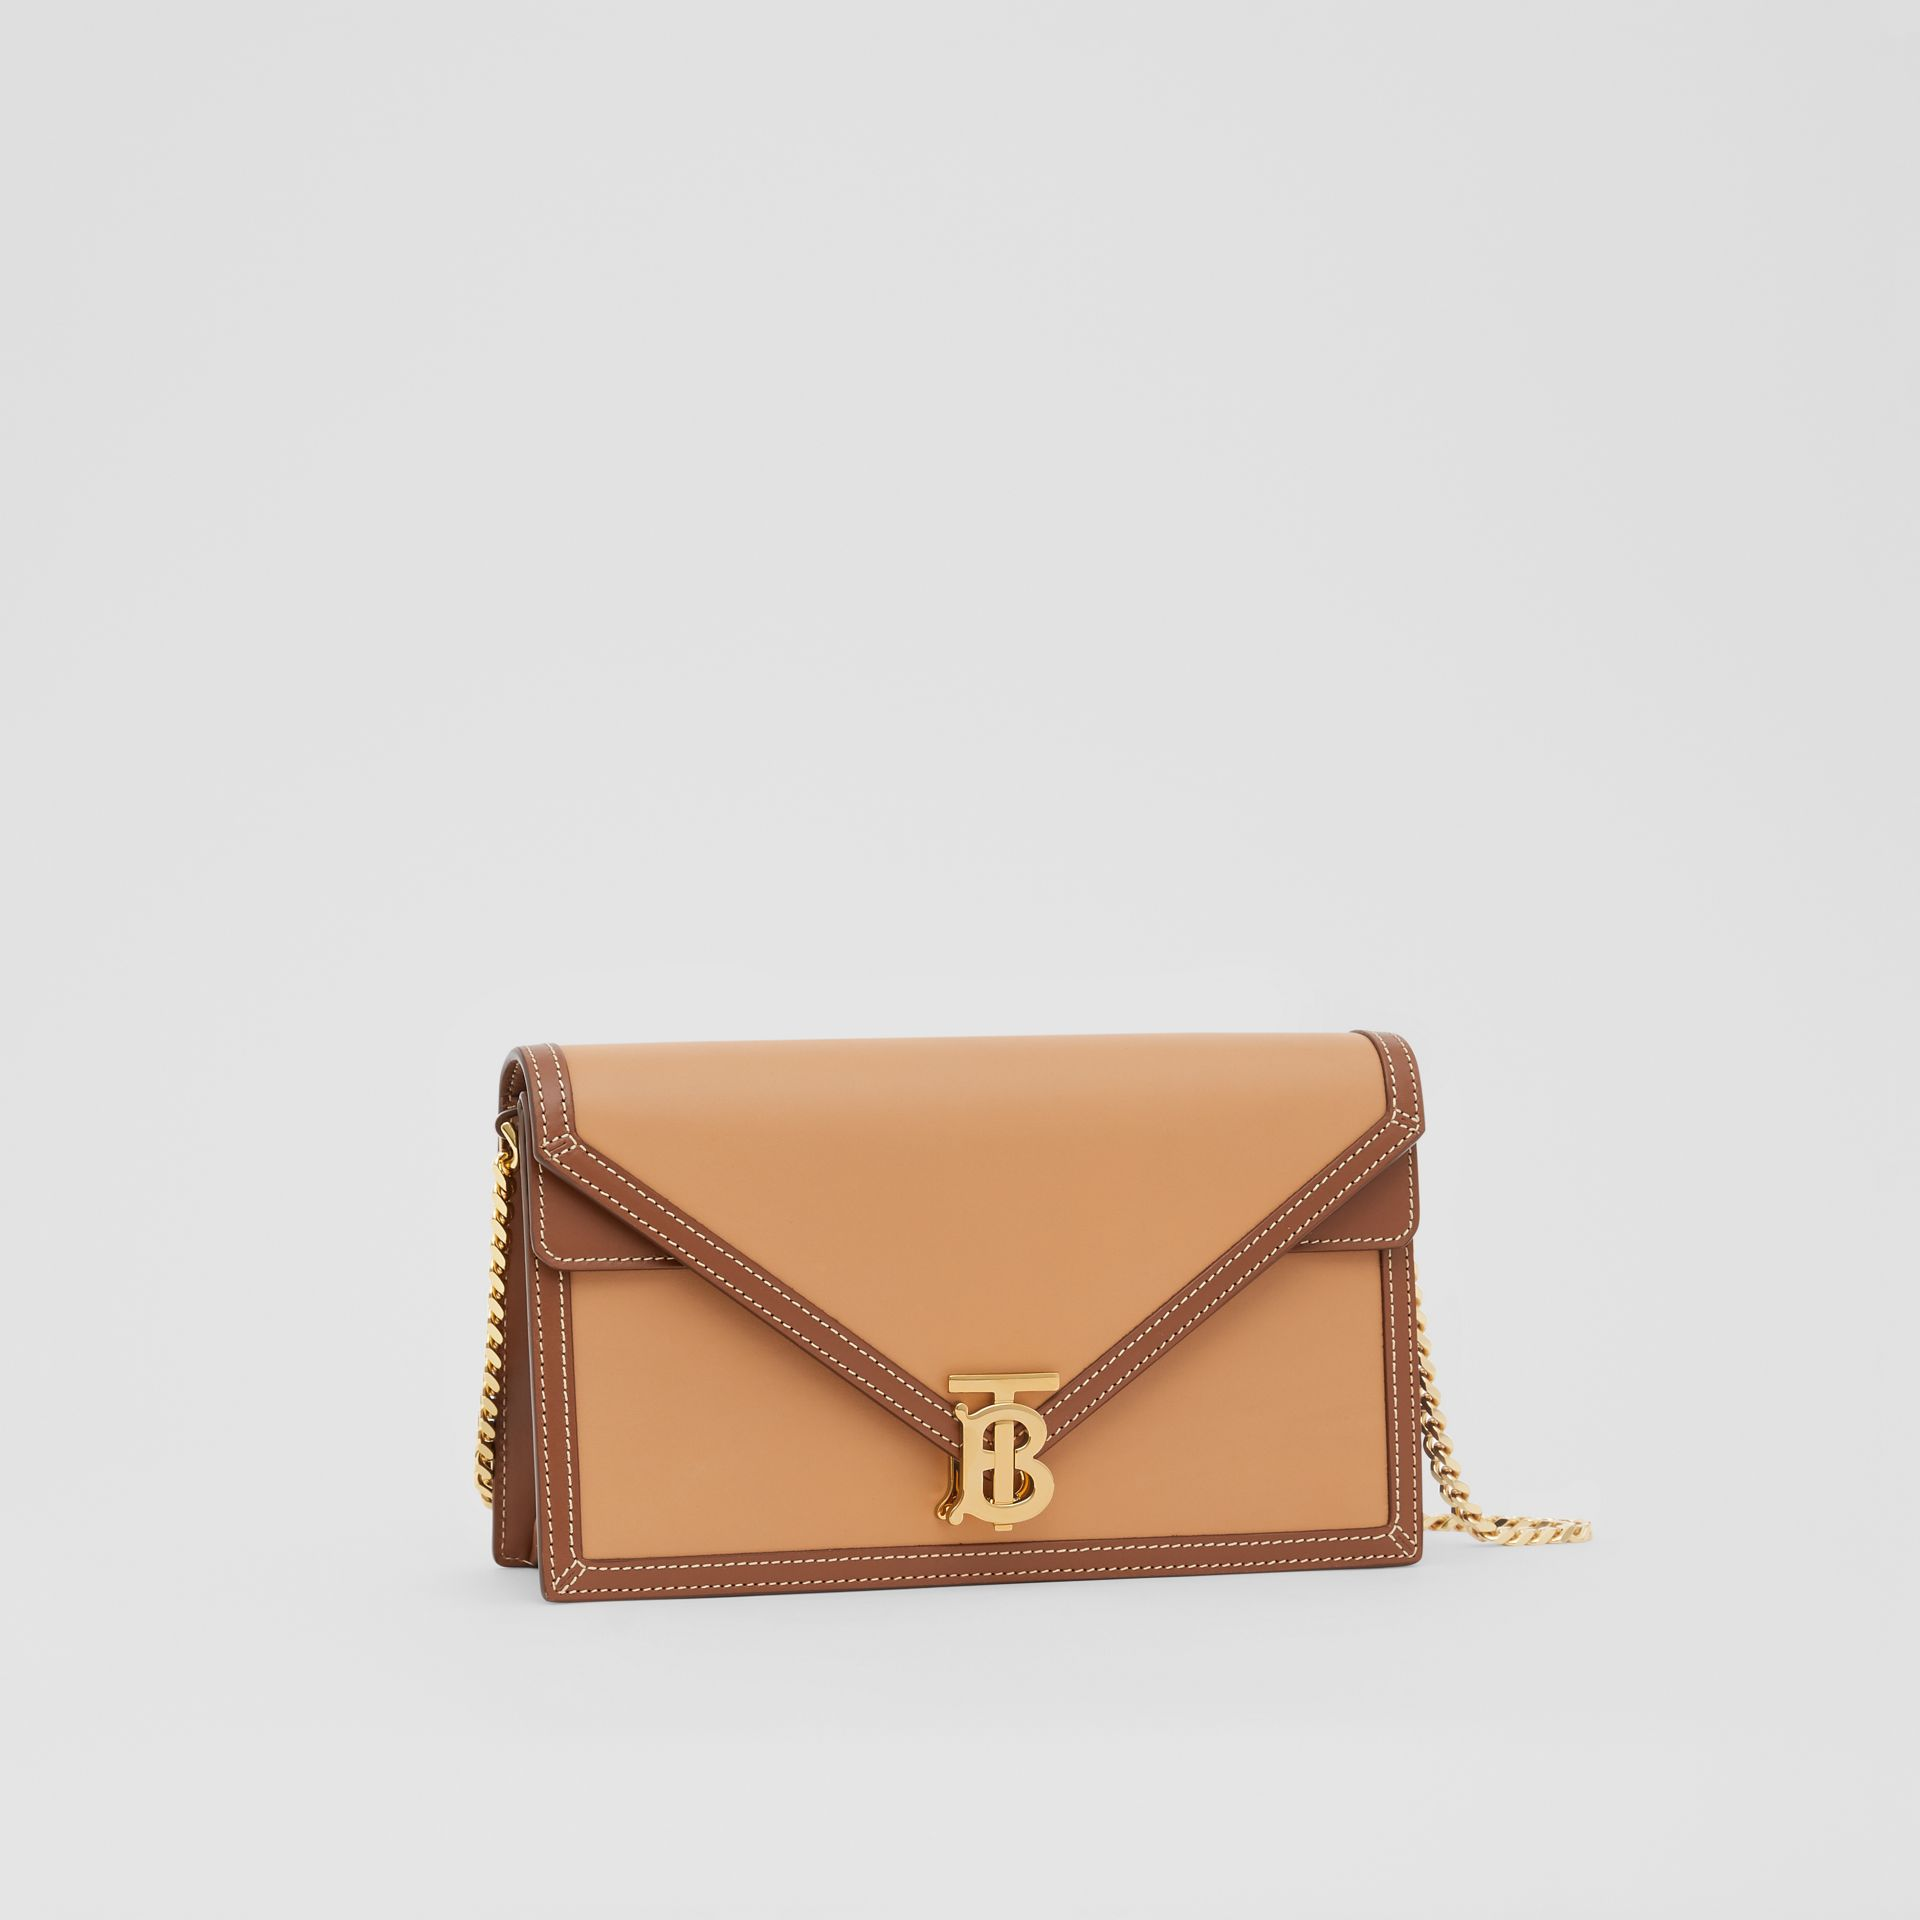 Small Two-tone Leather TB Envelope Clutch in Malt Brown - Women | Burberry - gallery image 5